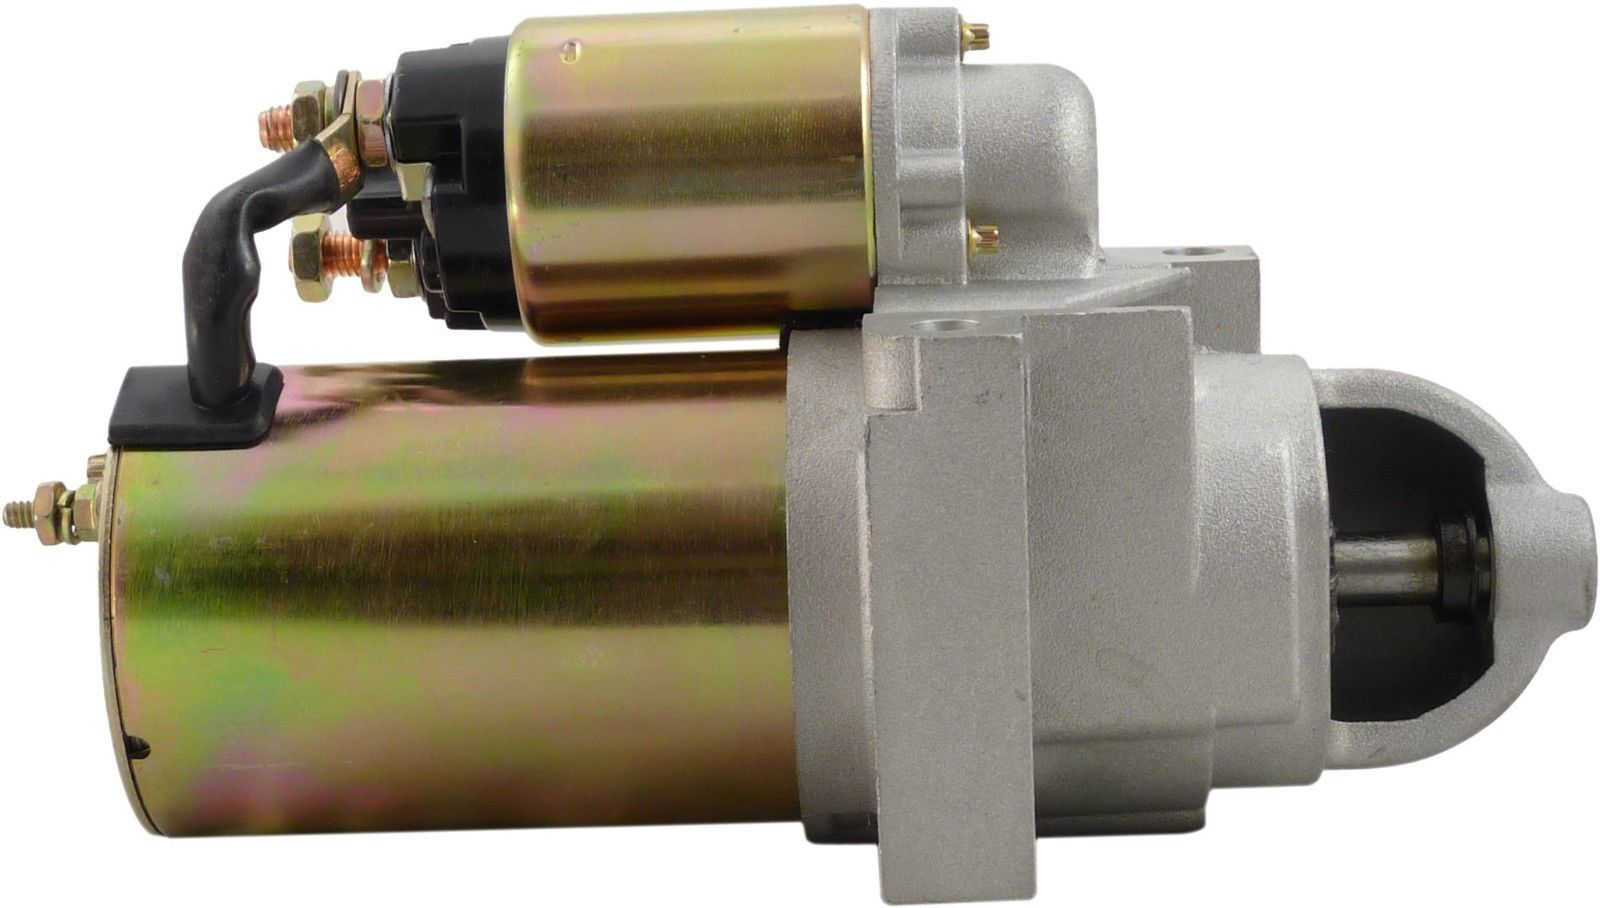 Details about Chevy 305 350 454 Mini Racing PMGR Gear Reduction Starter  High Torque 3HP